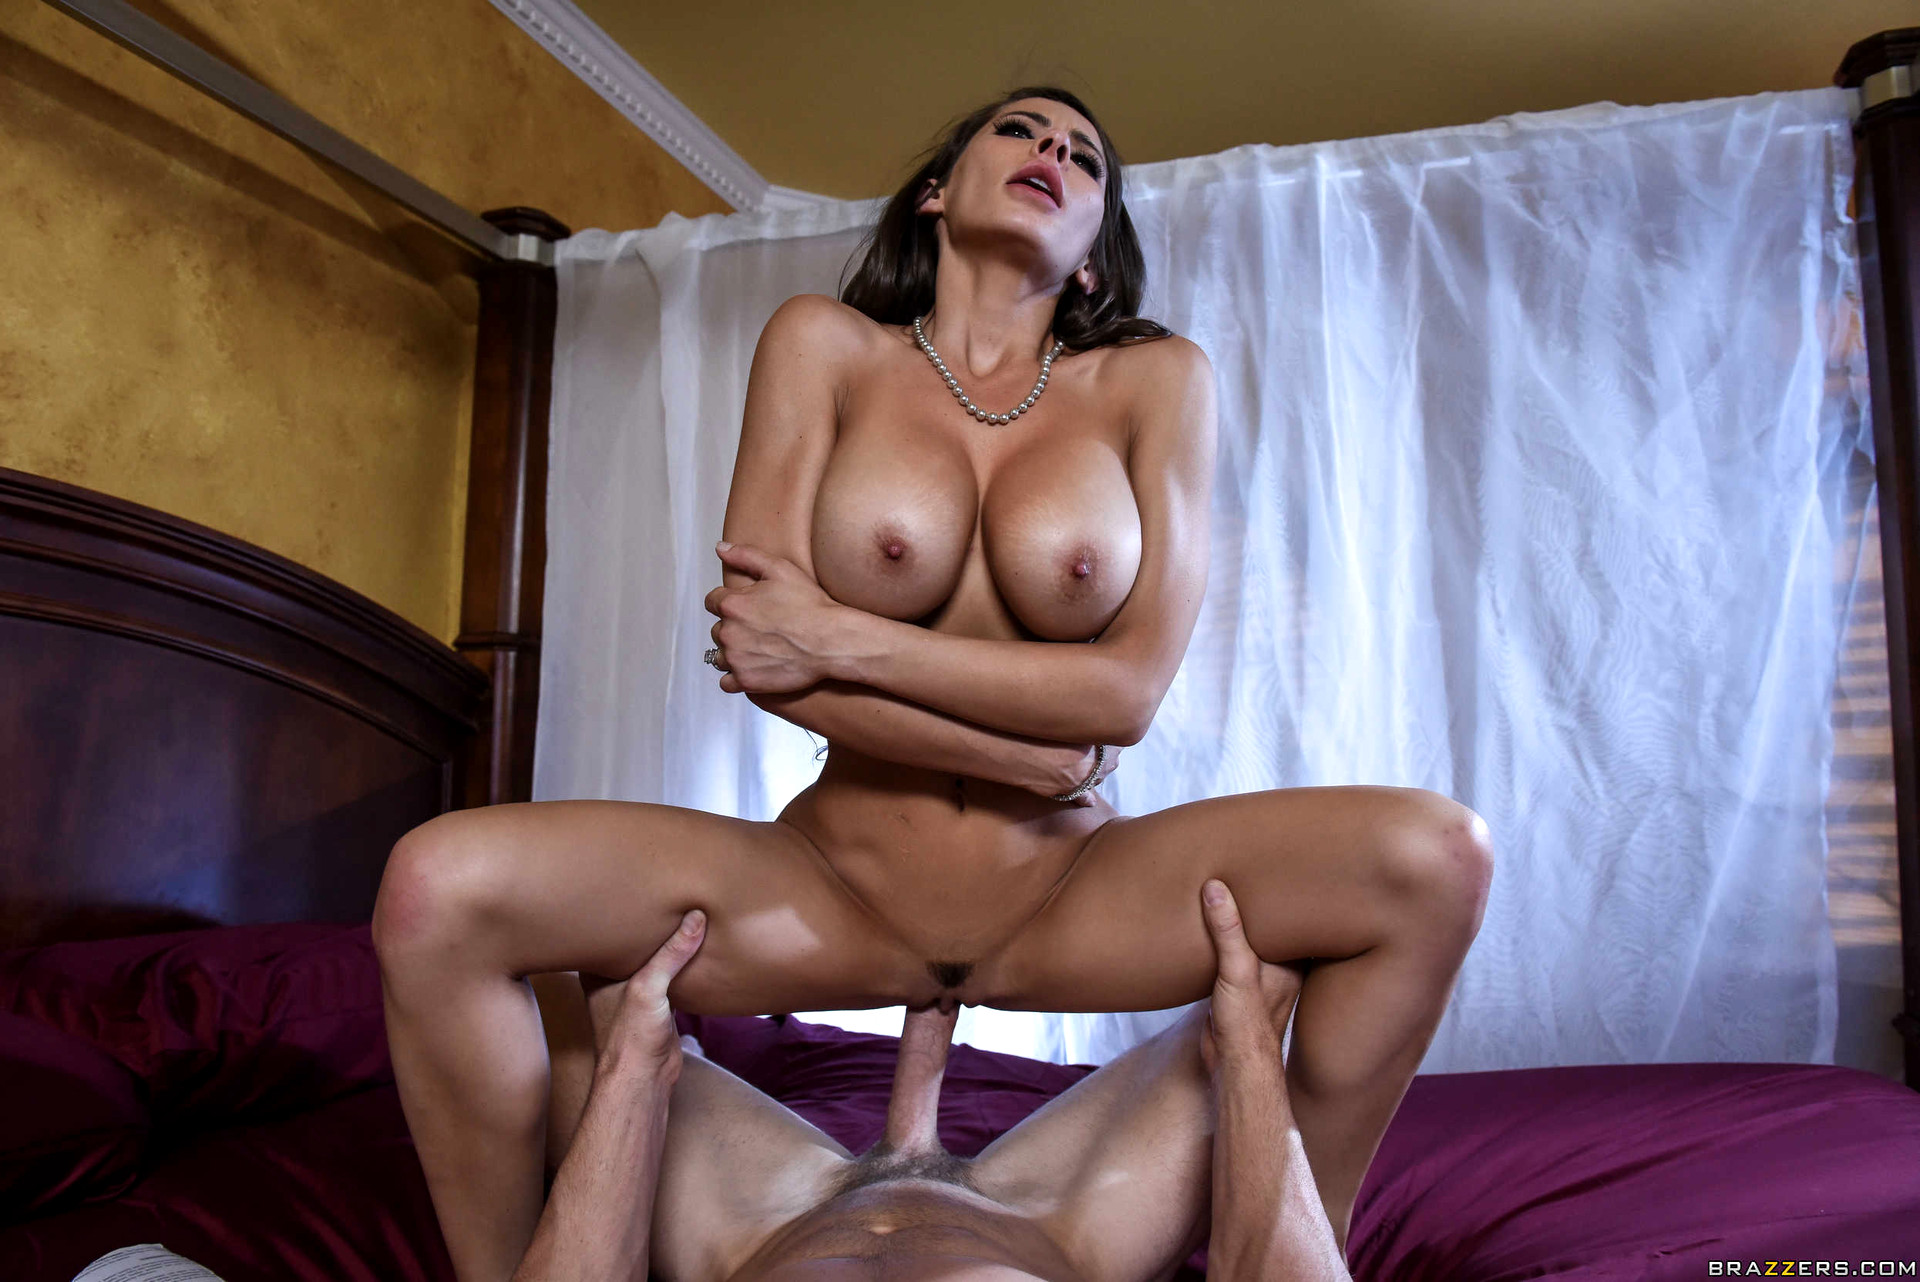 Sex Hd Mobile Pics Brazzers Network Madison Ivy Official -8019